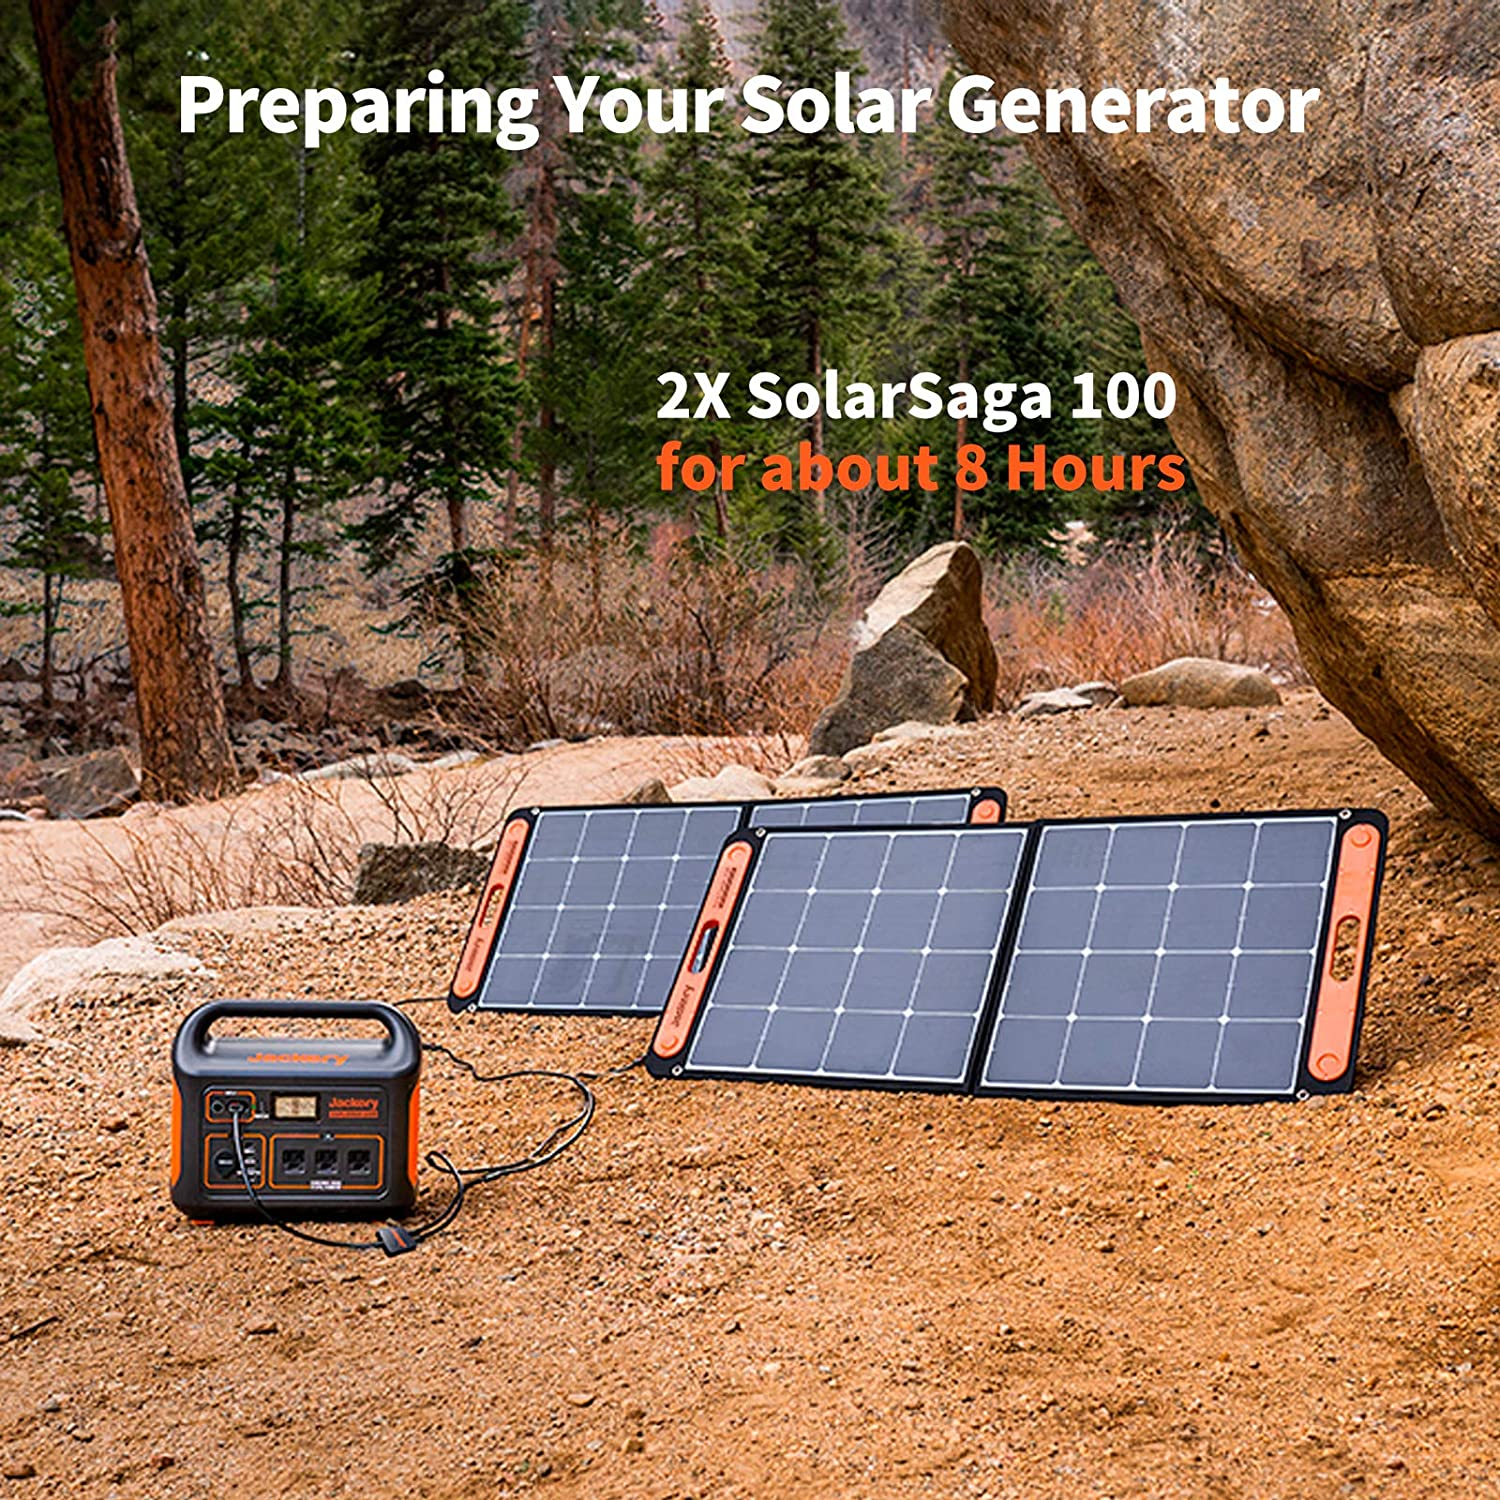 Solar For Camping